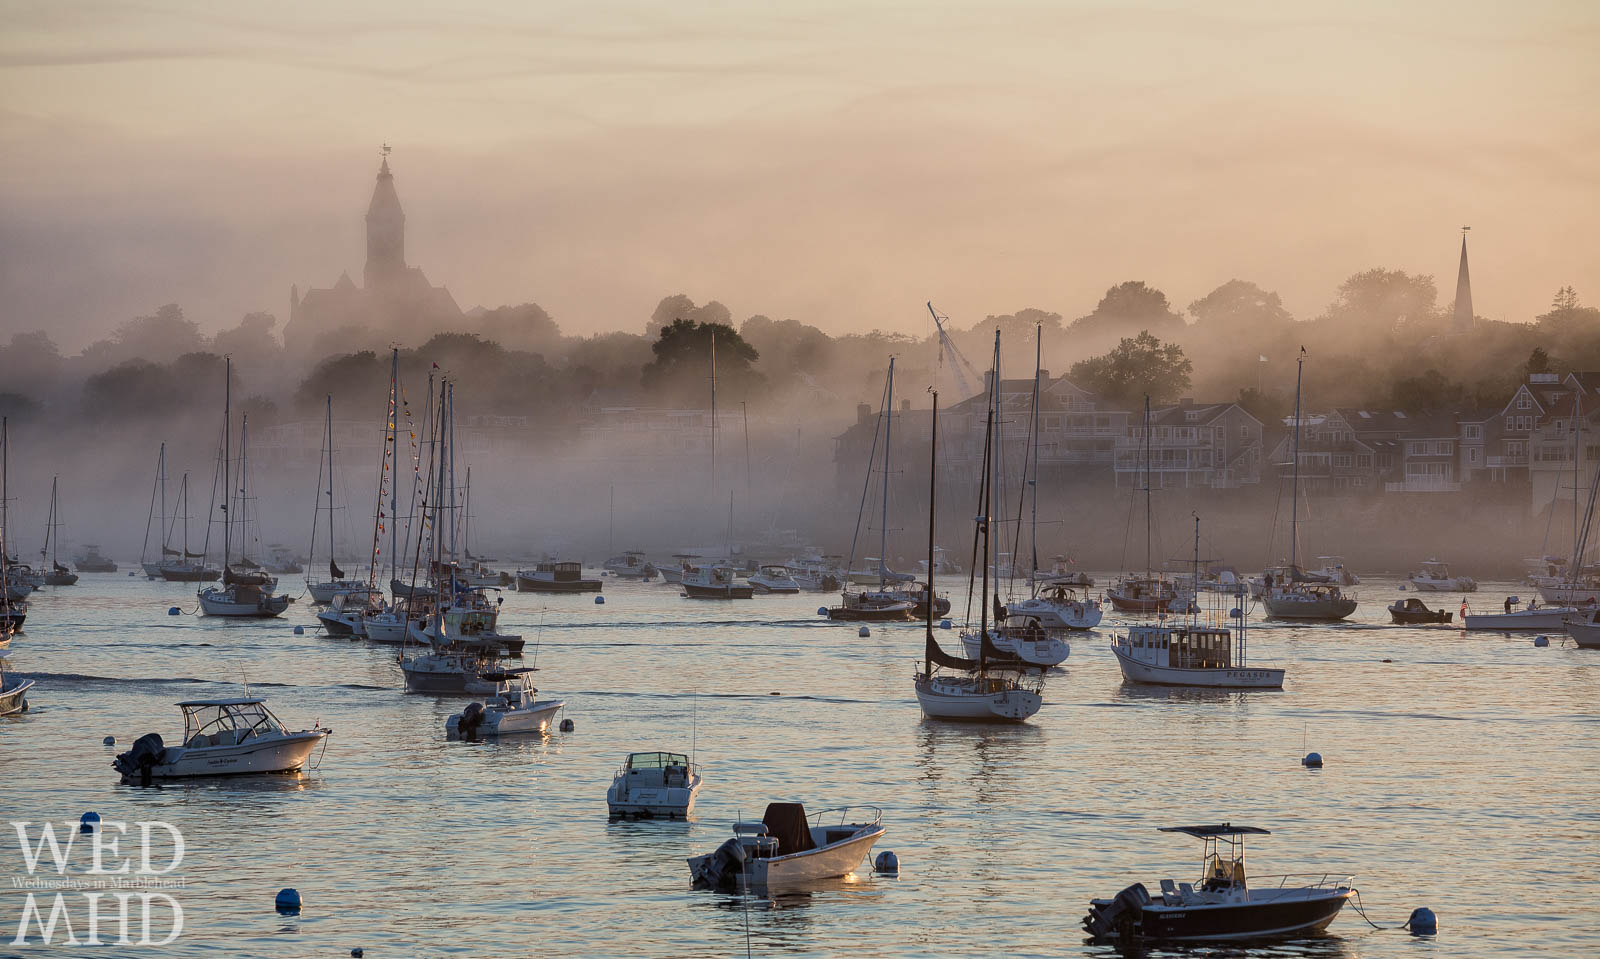 Fog rolls in on a July evening painting the harbor in incredible light